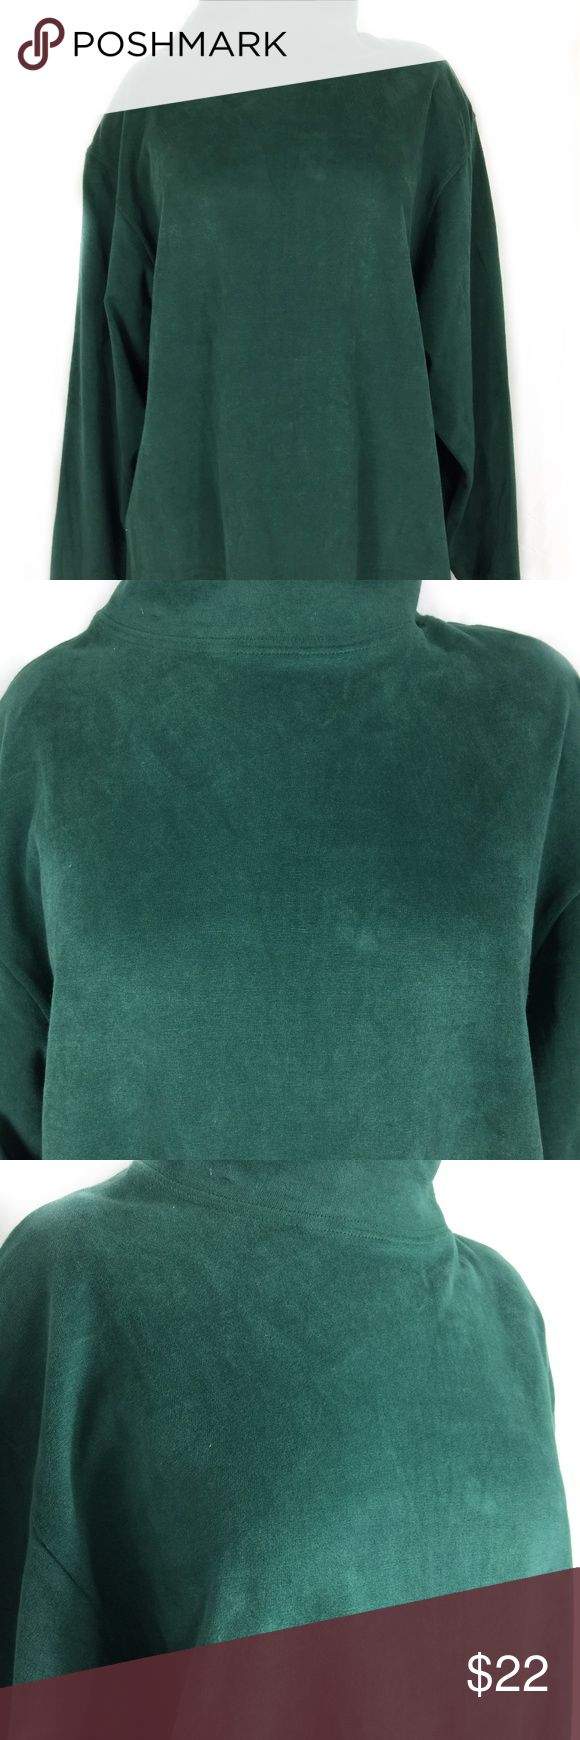 Victoria Jones vintage women's green top M Victoria Jones vintage women's green top long sleeves size M new.     We will ship all orders within 1 business days of payment (does not include Sunday or US Holidays).  If you are unsatisfied with your order, please contact us via email. Victoria Jones Woman Tops Sweatshirts & Hoodies